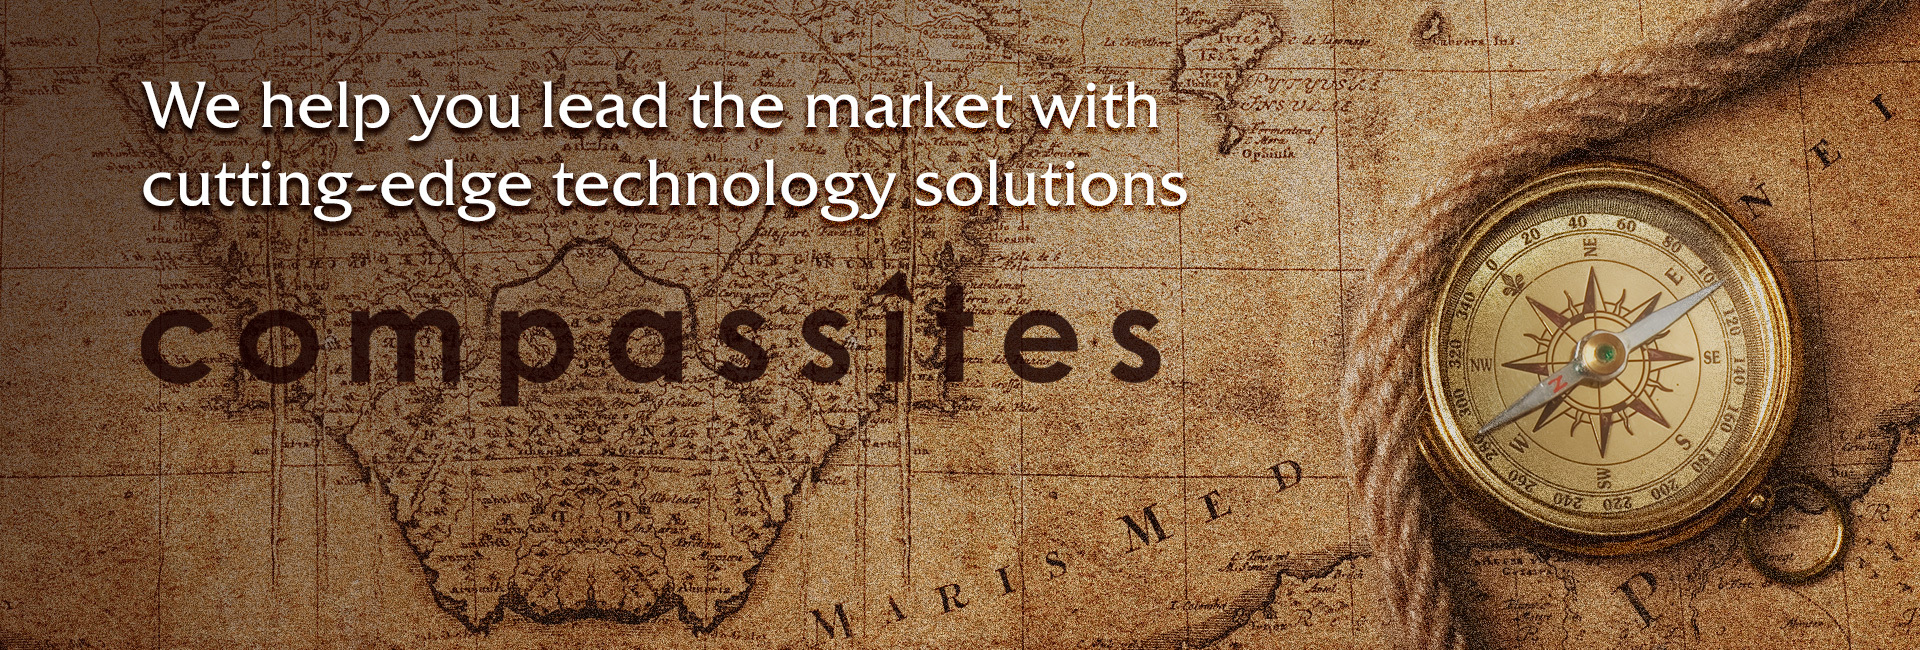 Technology Solutions Company